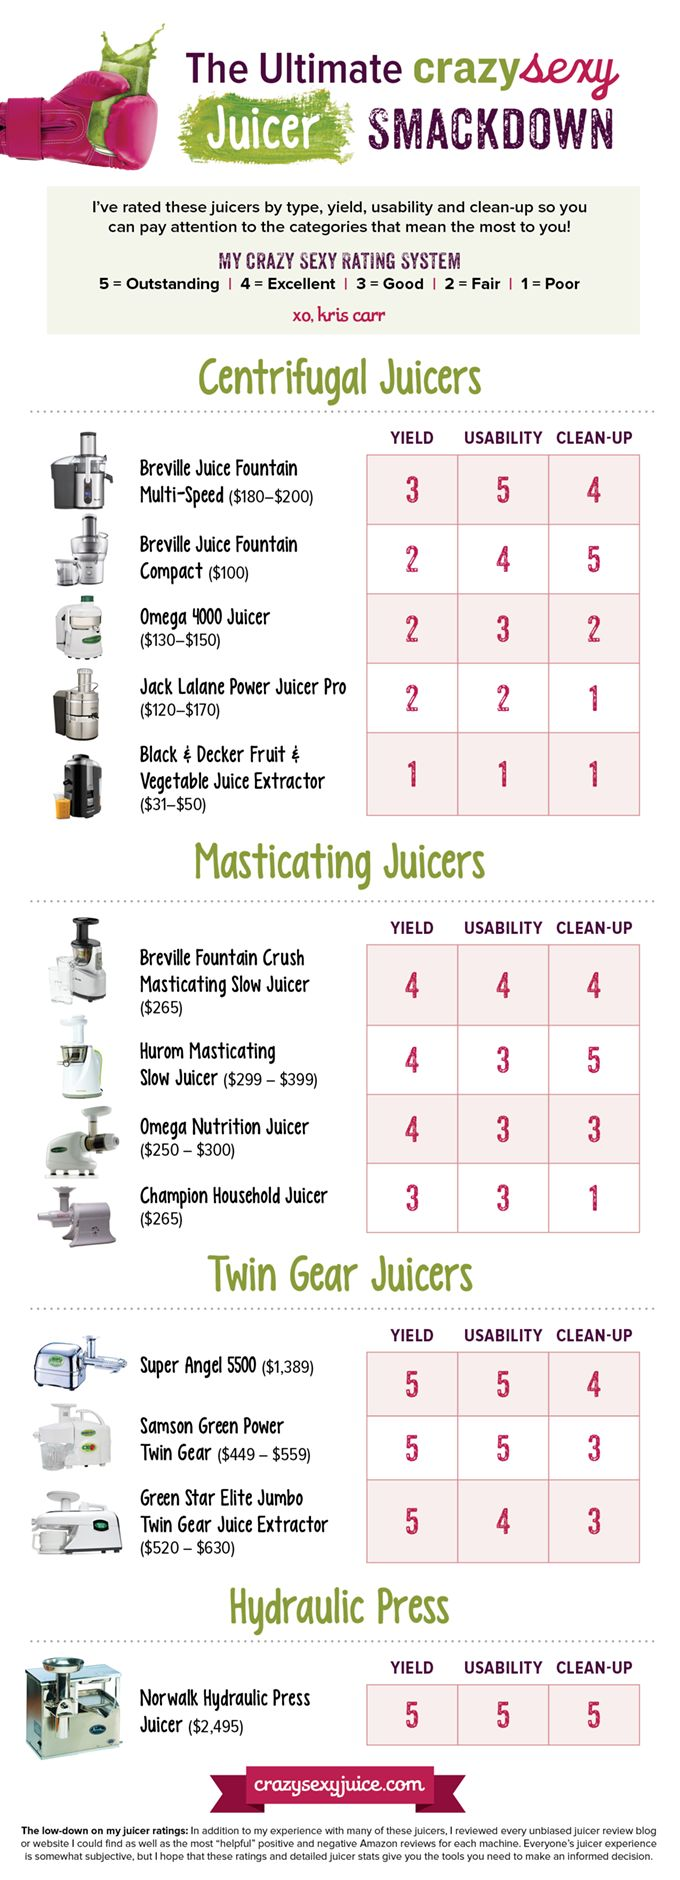 Best Juicer to Buy: A Crazy Sexy Smackdown & Juicer Buying Guide